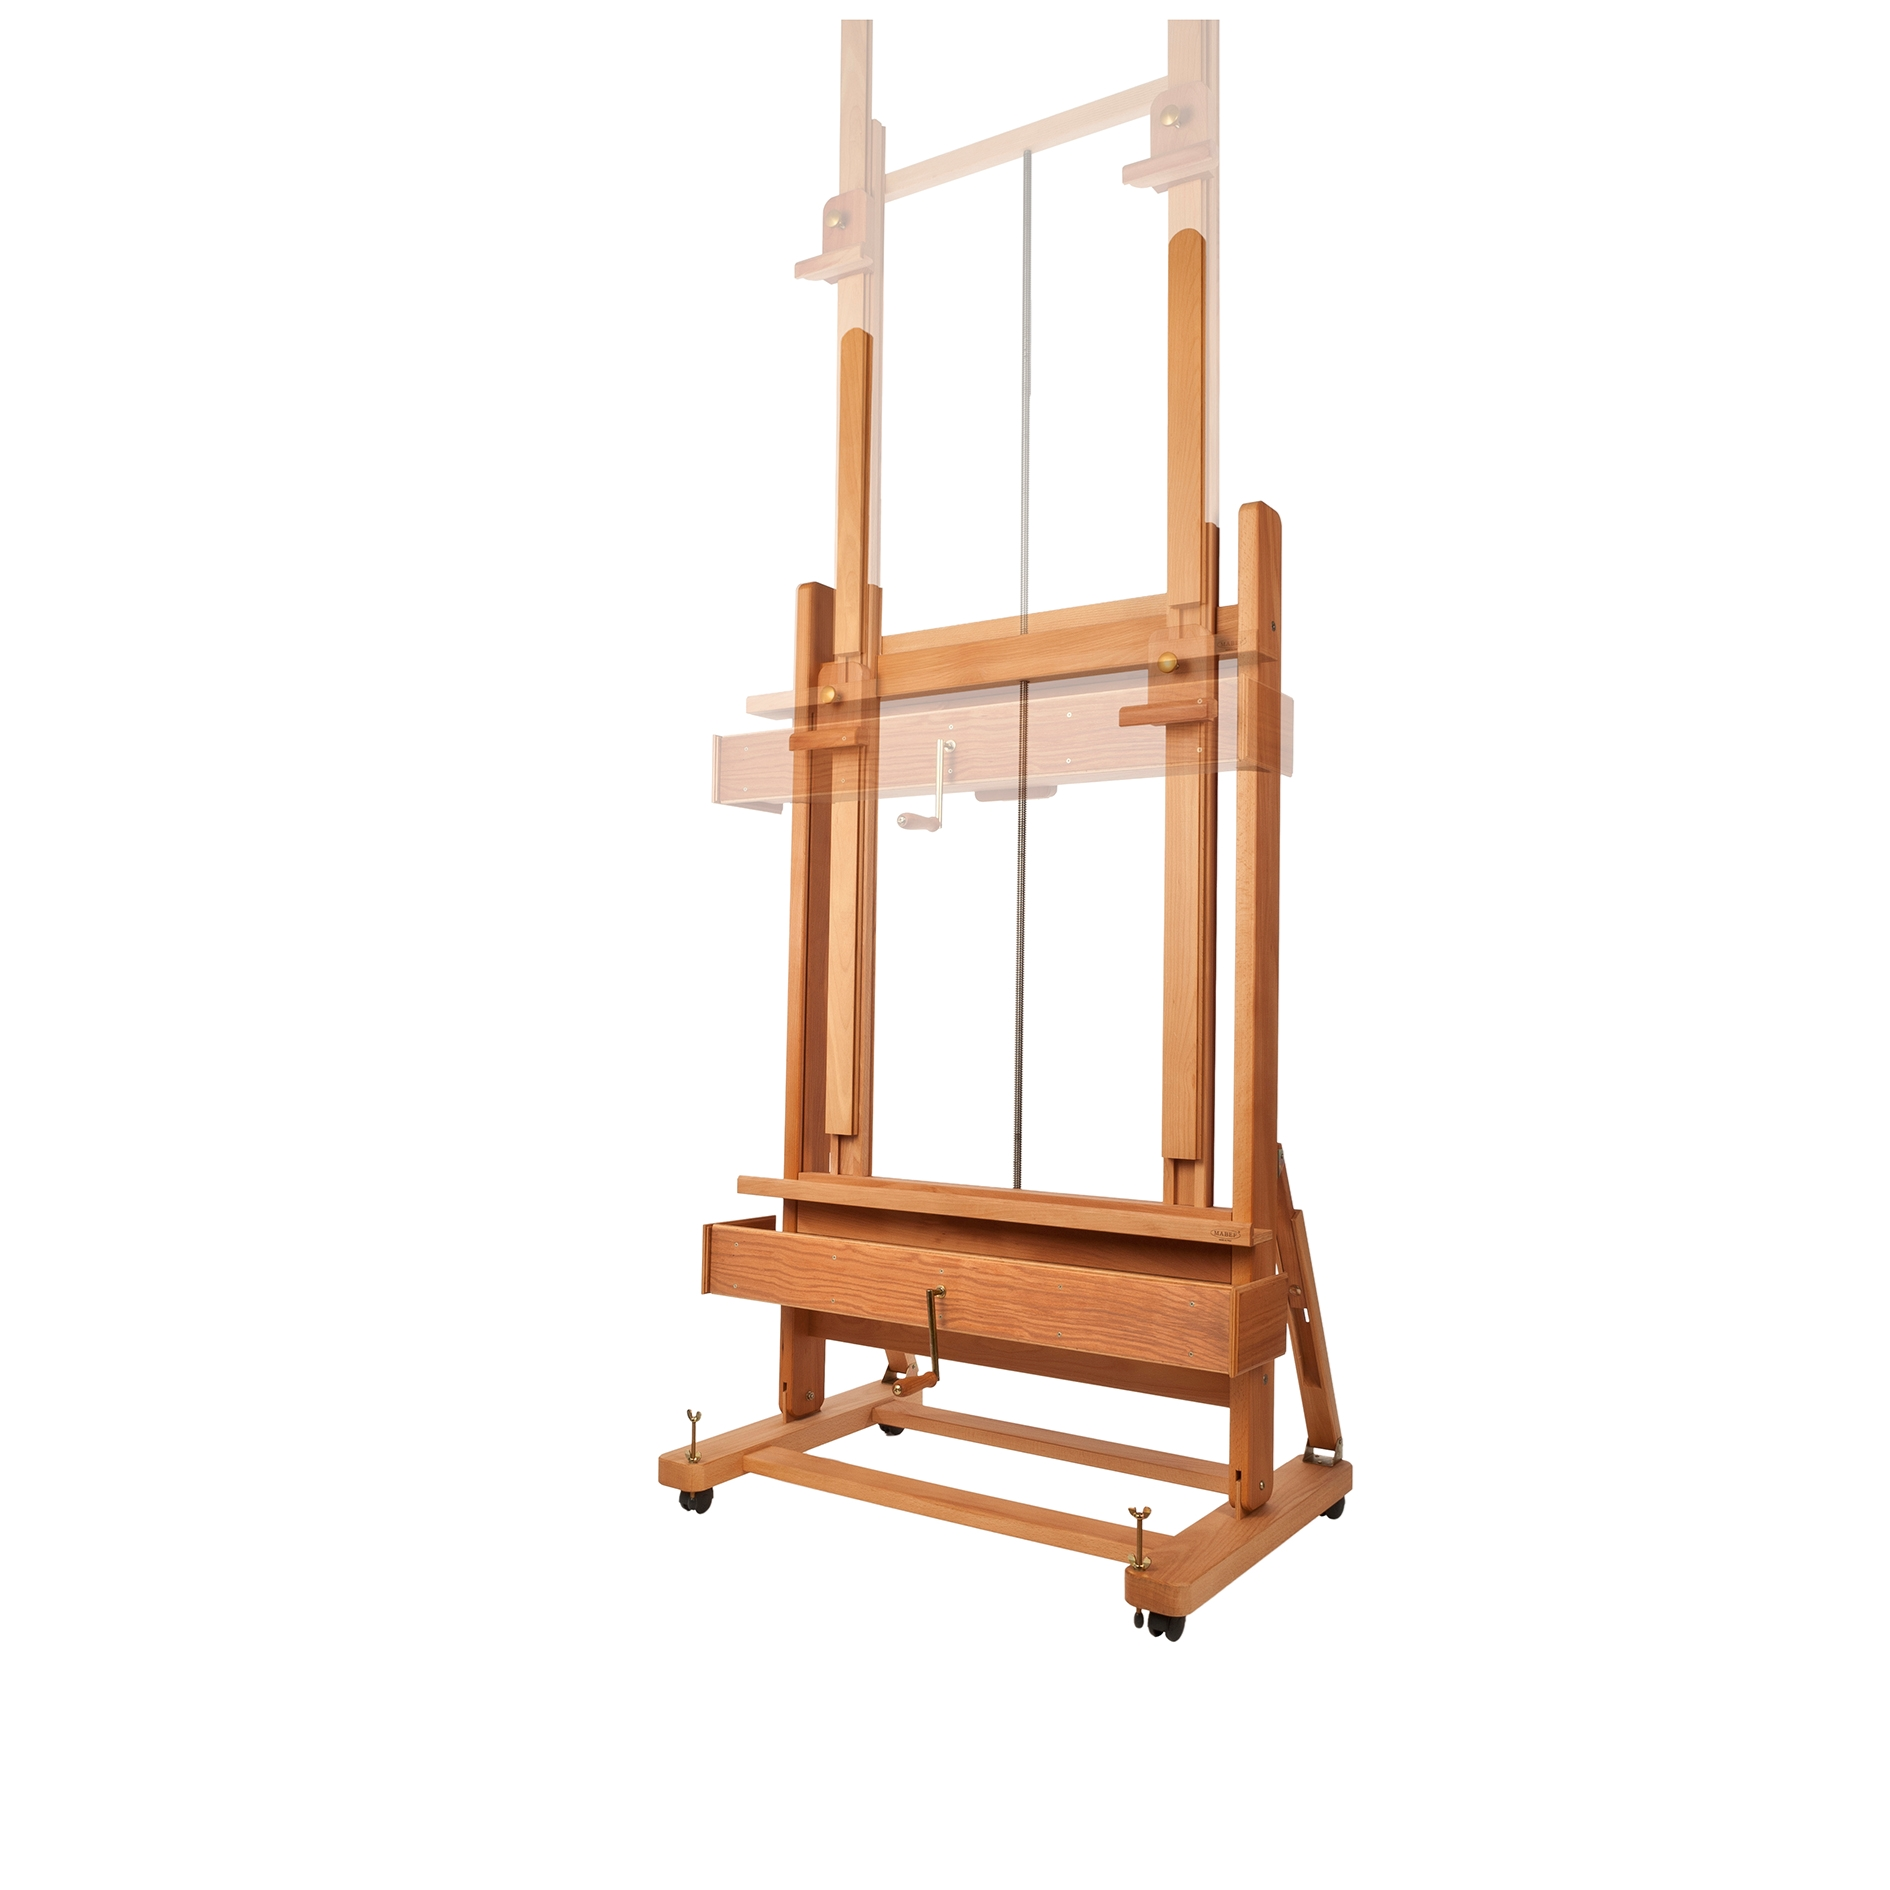 MABEF M-02 Studio Easels are available via our warehouse and online at The PaintBox, home of the widest range of traditional and progressive Art Supplies in Adelaide. At The PaintBox we source and stock quality art supplies which we import directly. This means that you have access to a greater variety and pay less. These are perfect for any artists from amateur to professional. They are also perfect for any budget size. Check out our loyalty rewards programme, which makes your artistic ambitions achievable. At these prices why not give these a go. Be sure to check out our other fabulous finds on our website and start saving today. Our knowledgeable staff at The PaintBox can guide you through our carefully selected ranges of art supplies for all applications. This is only a small selection of our stock. We sell many brands, weights, and textures, in-store only. Please call 08 8388 7776 to enquire. We offer art tuition too.